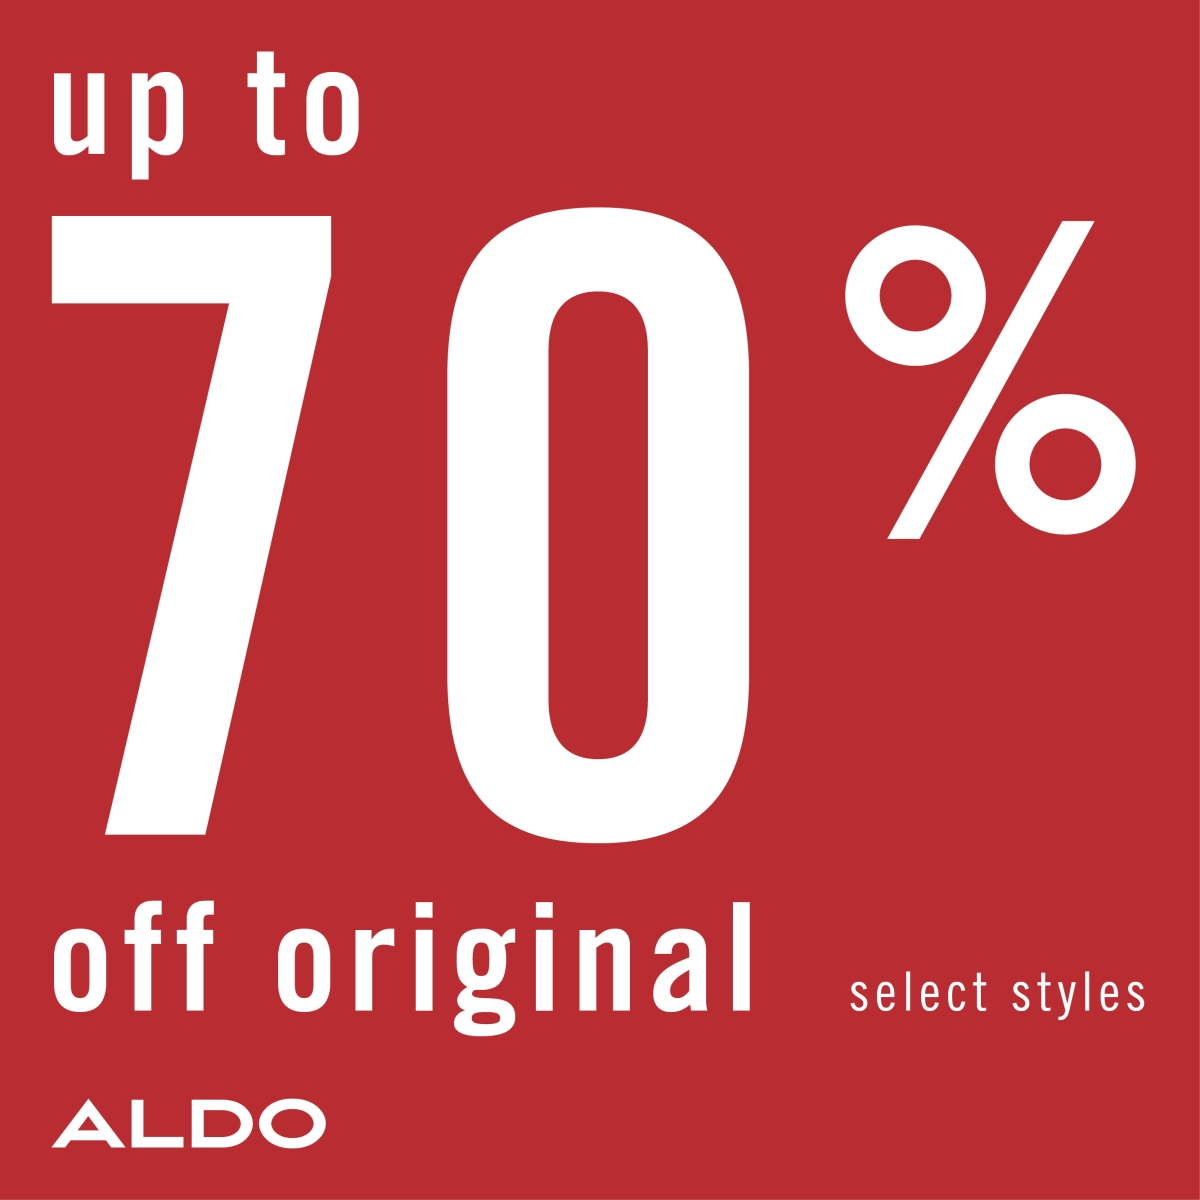 End of season sale! - Up to 70% off on sale from ALDO